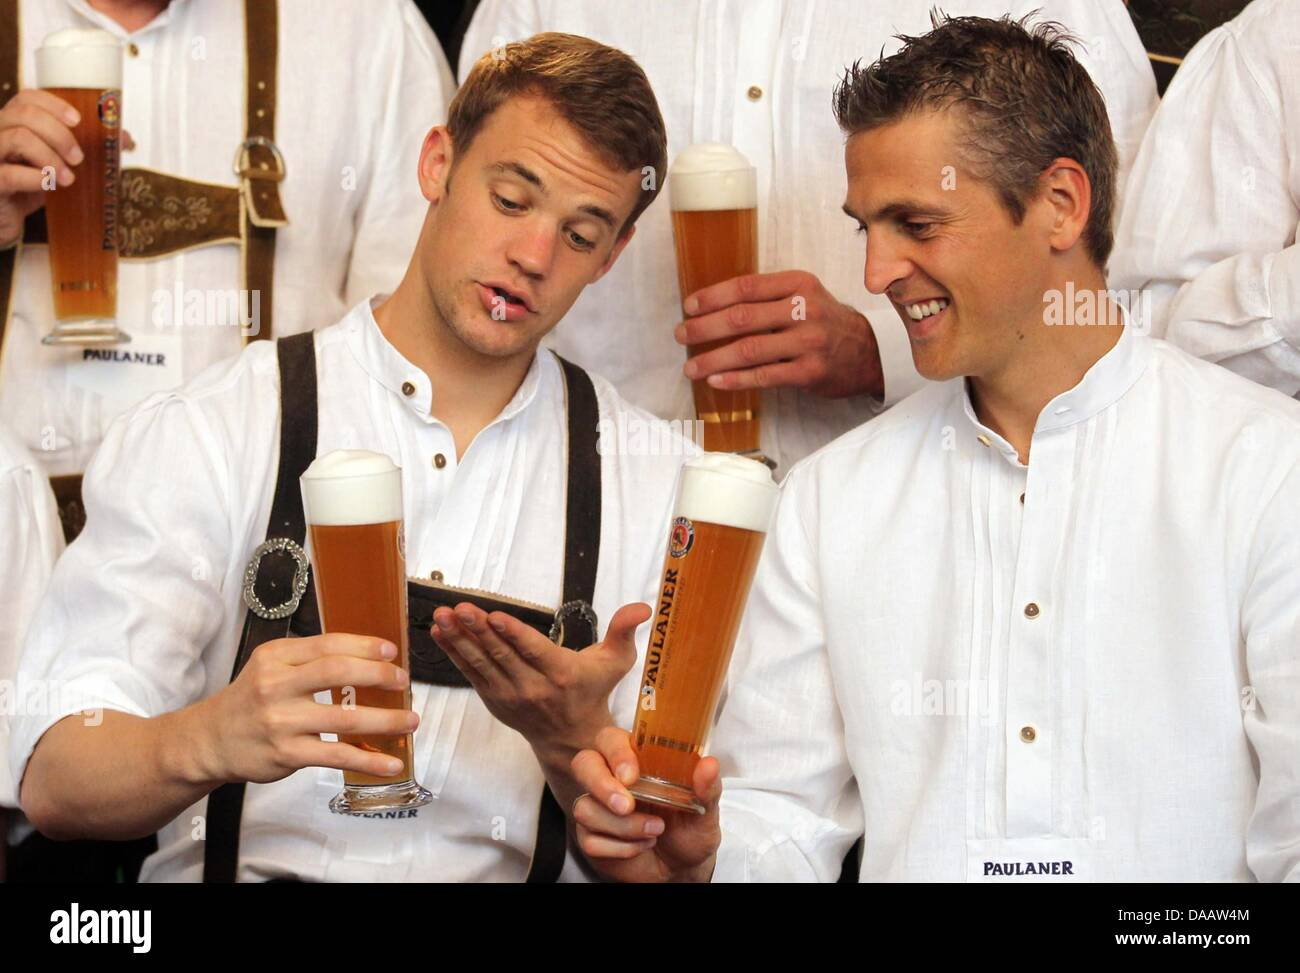 FC Bayern Munich s Manuel Neuer and Joerg Butt wear lederhosen and drink  beer during a sponsorship appointment in Munich 606725e4f